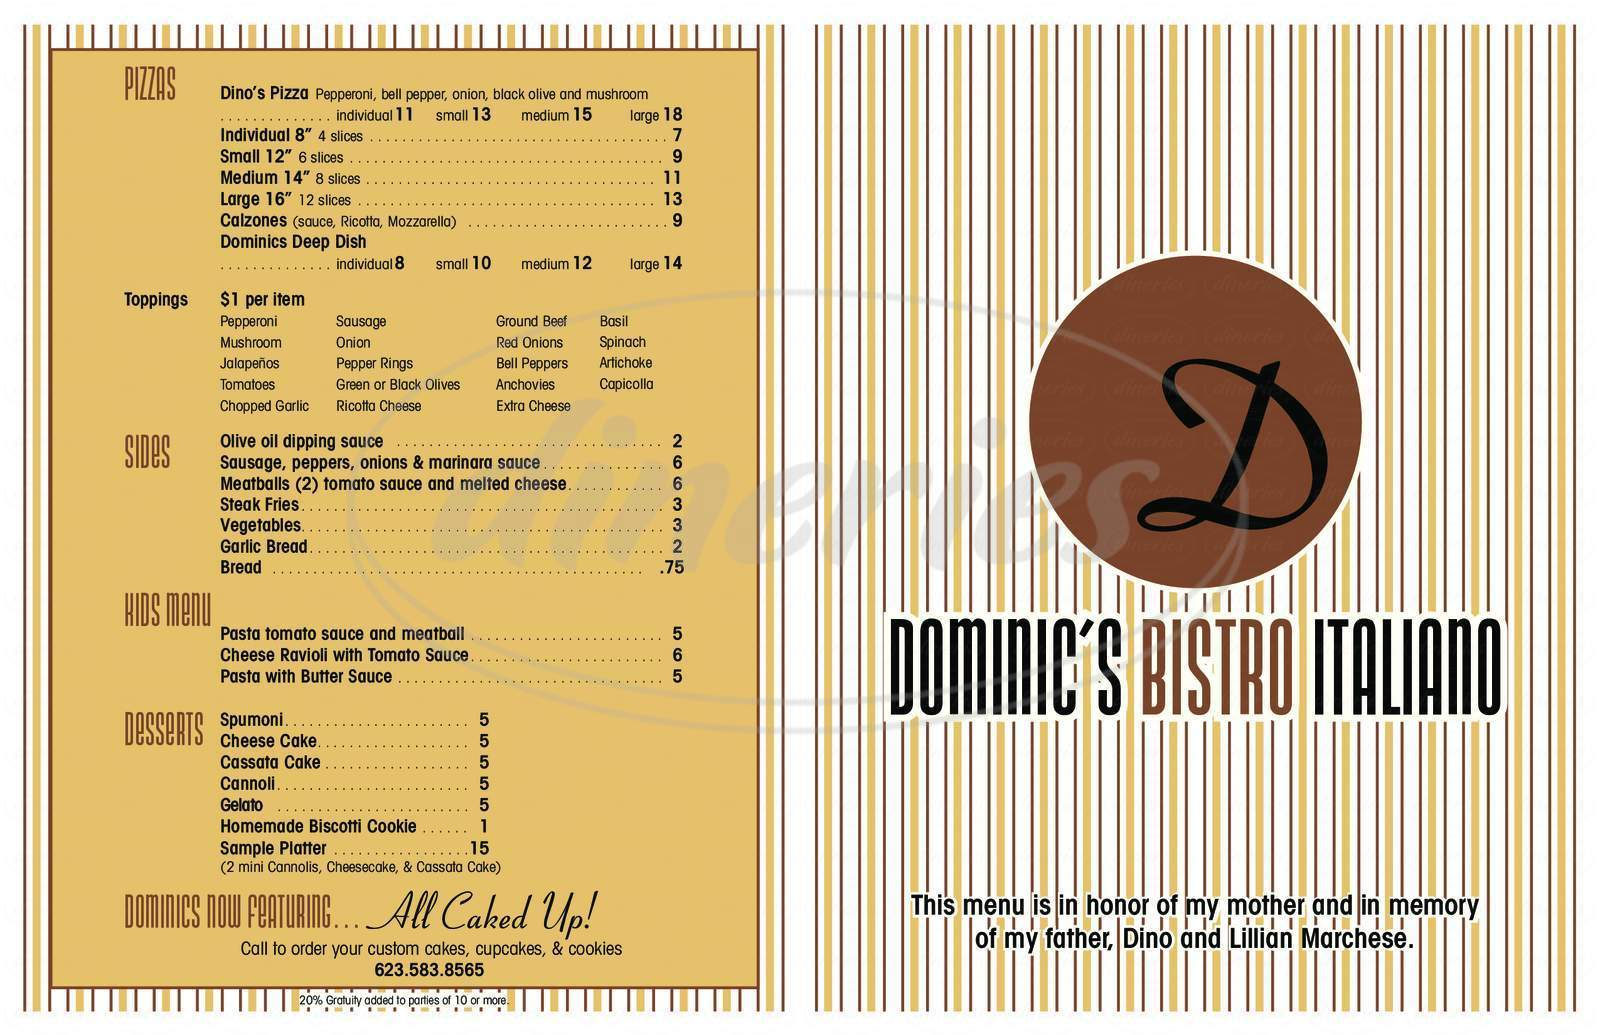 menu for Dominic's Bistro Italiano